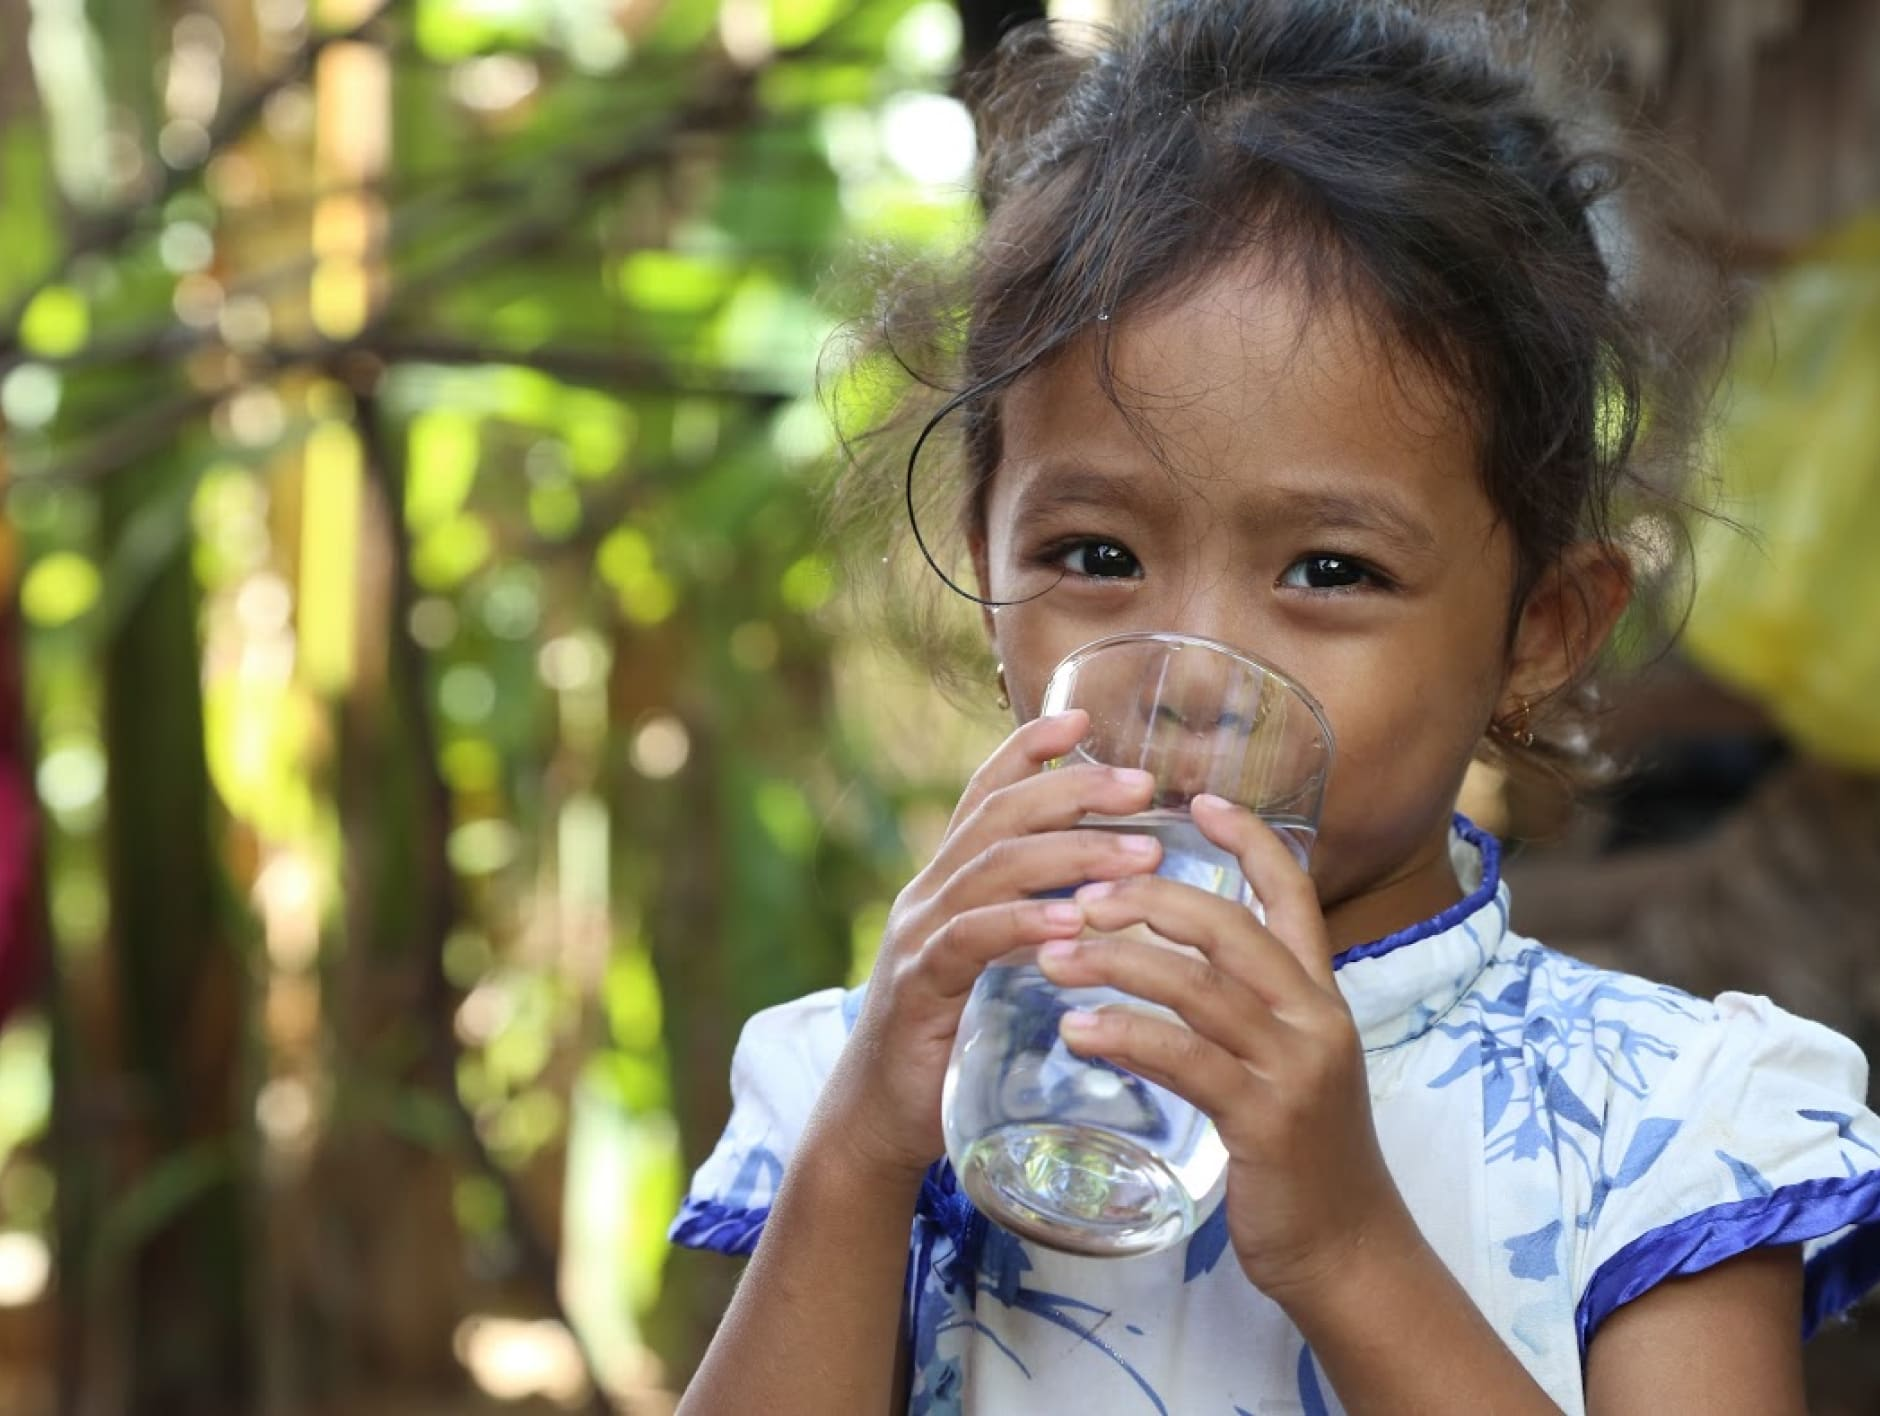 A little girl drinks clear water from a glass.